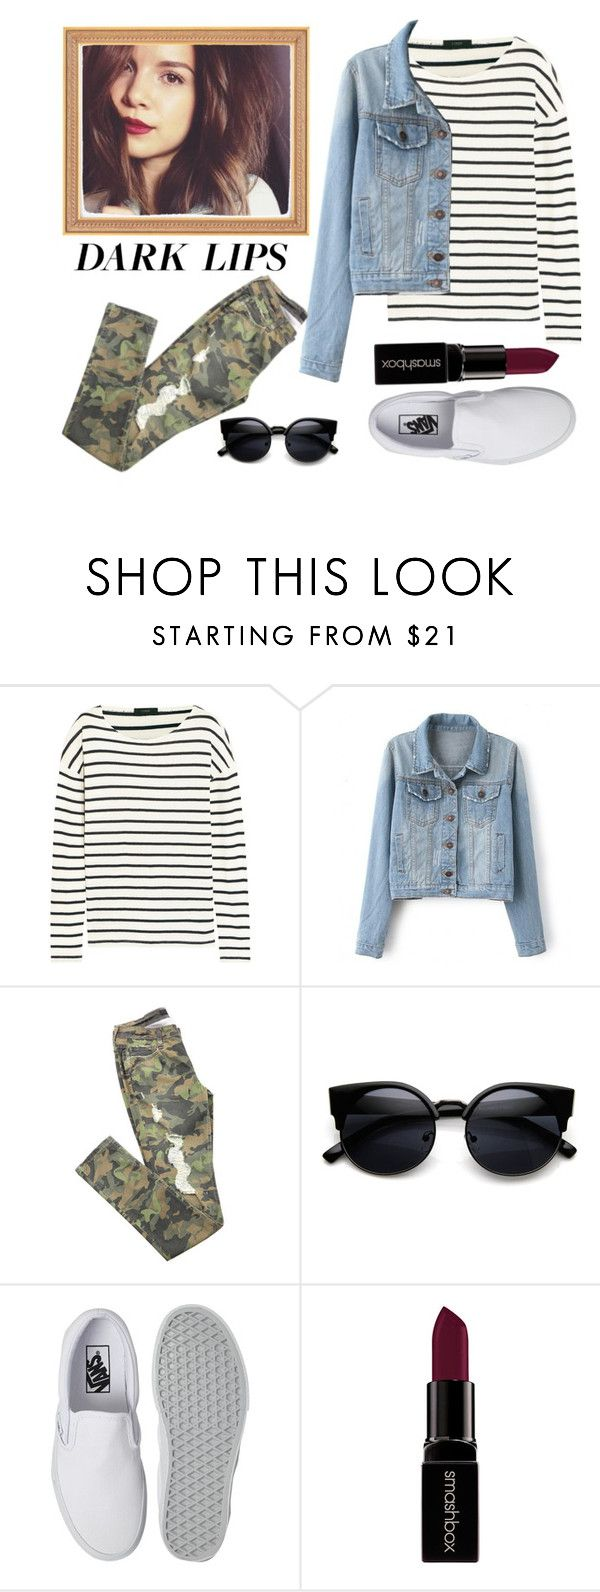 """""""lèvres sombres"""" by samwa147 ❤ liked on Polyvore featuring beauty, J.Crew, Vans and Smashbox"""